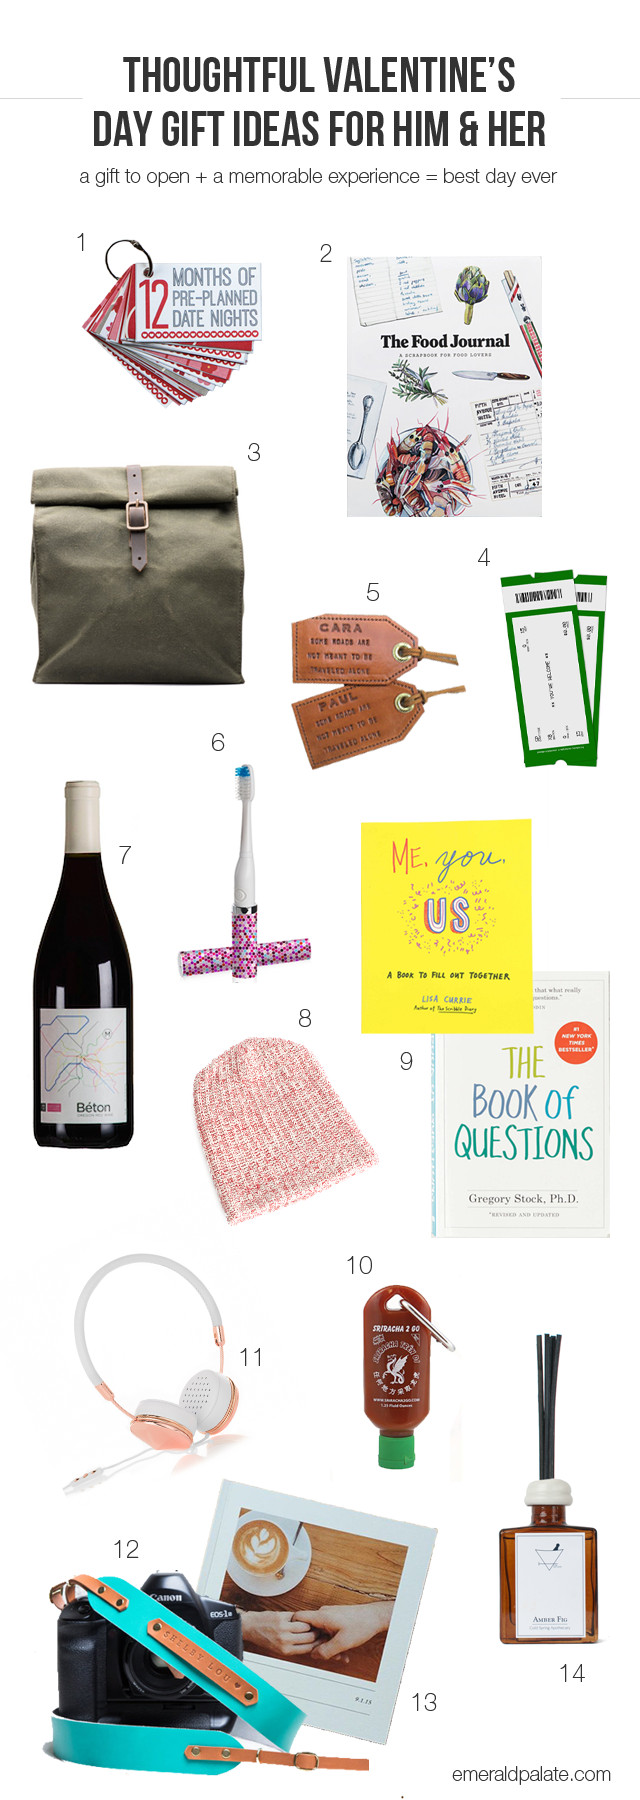 Valentine'S Day Gift Ideas For Her  Thoughtful Valentine s Day Gift Ideas For Him & Her The